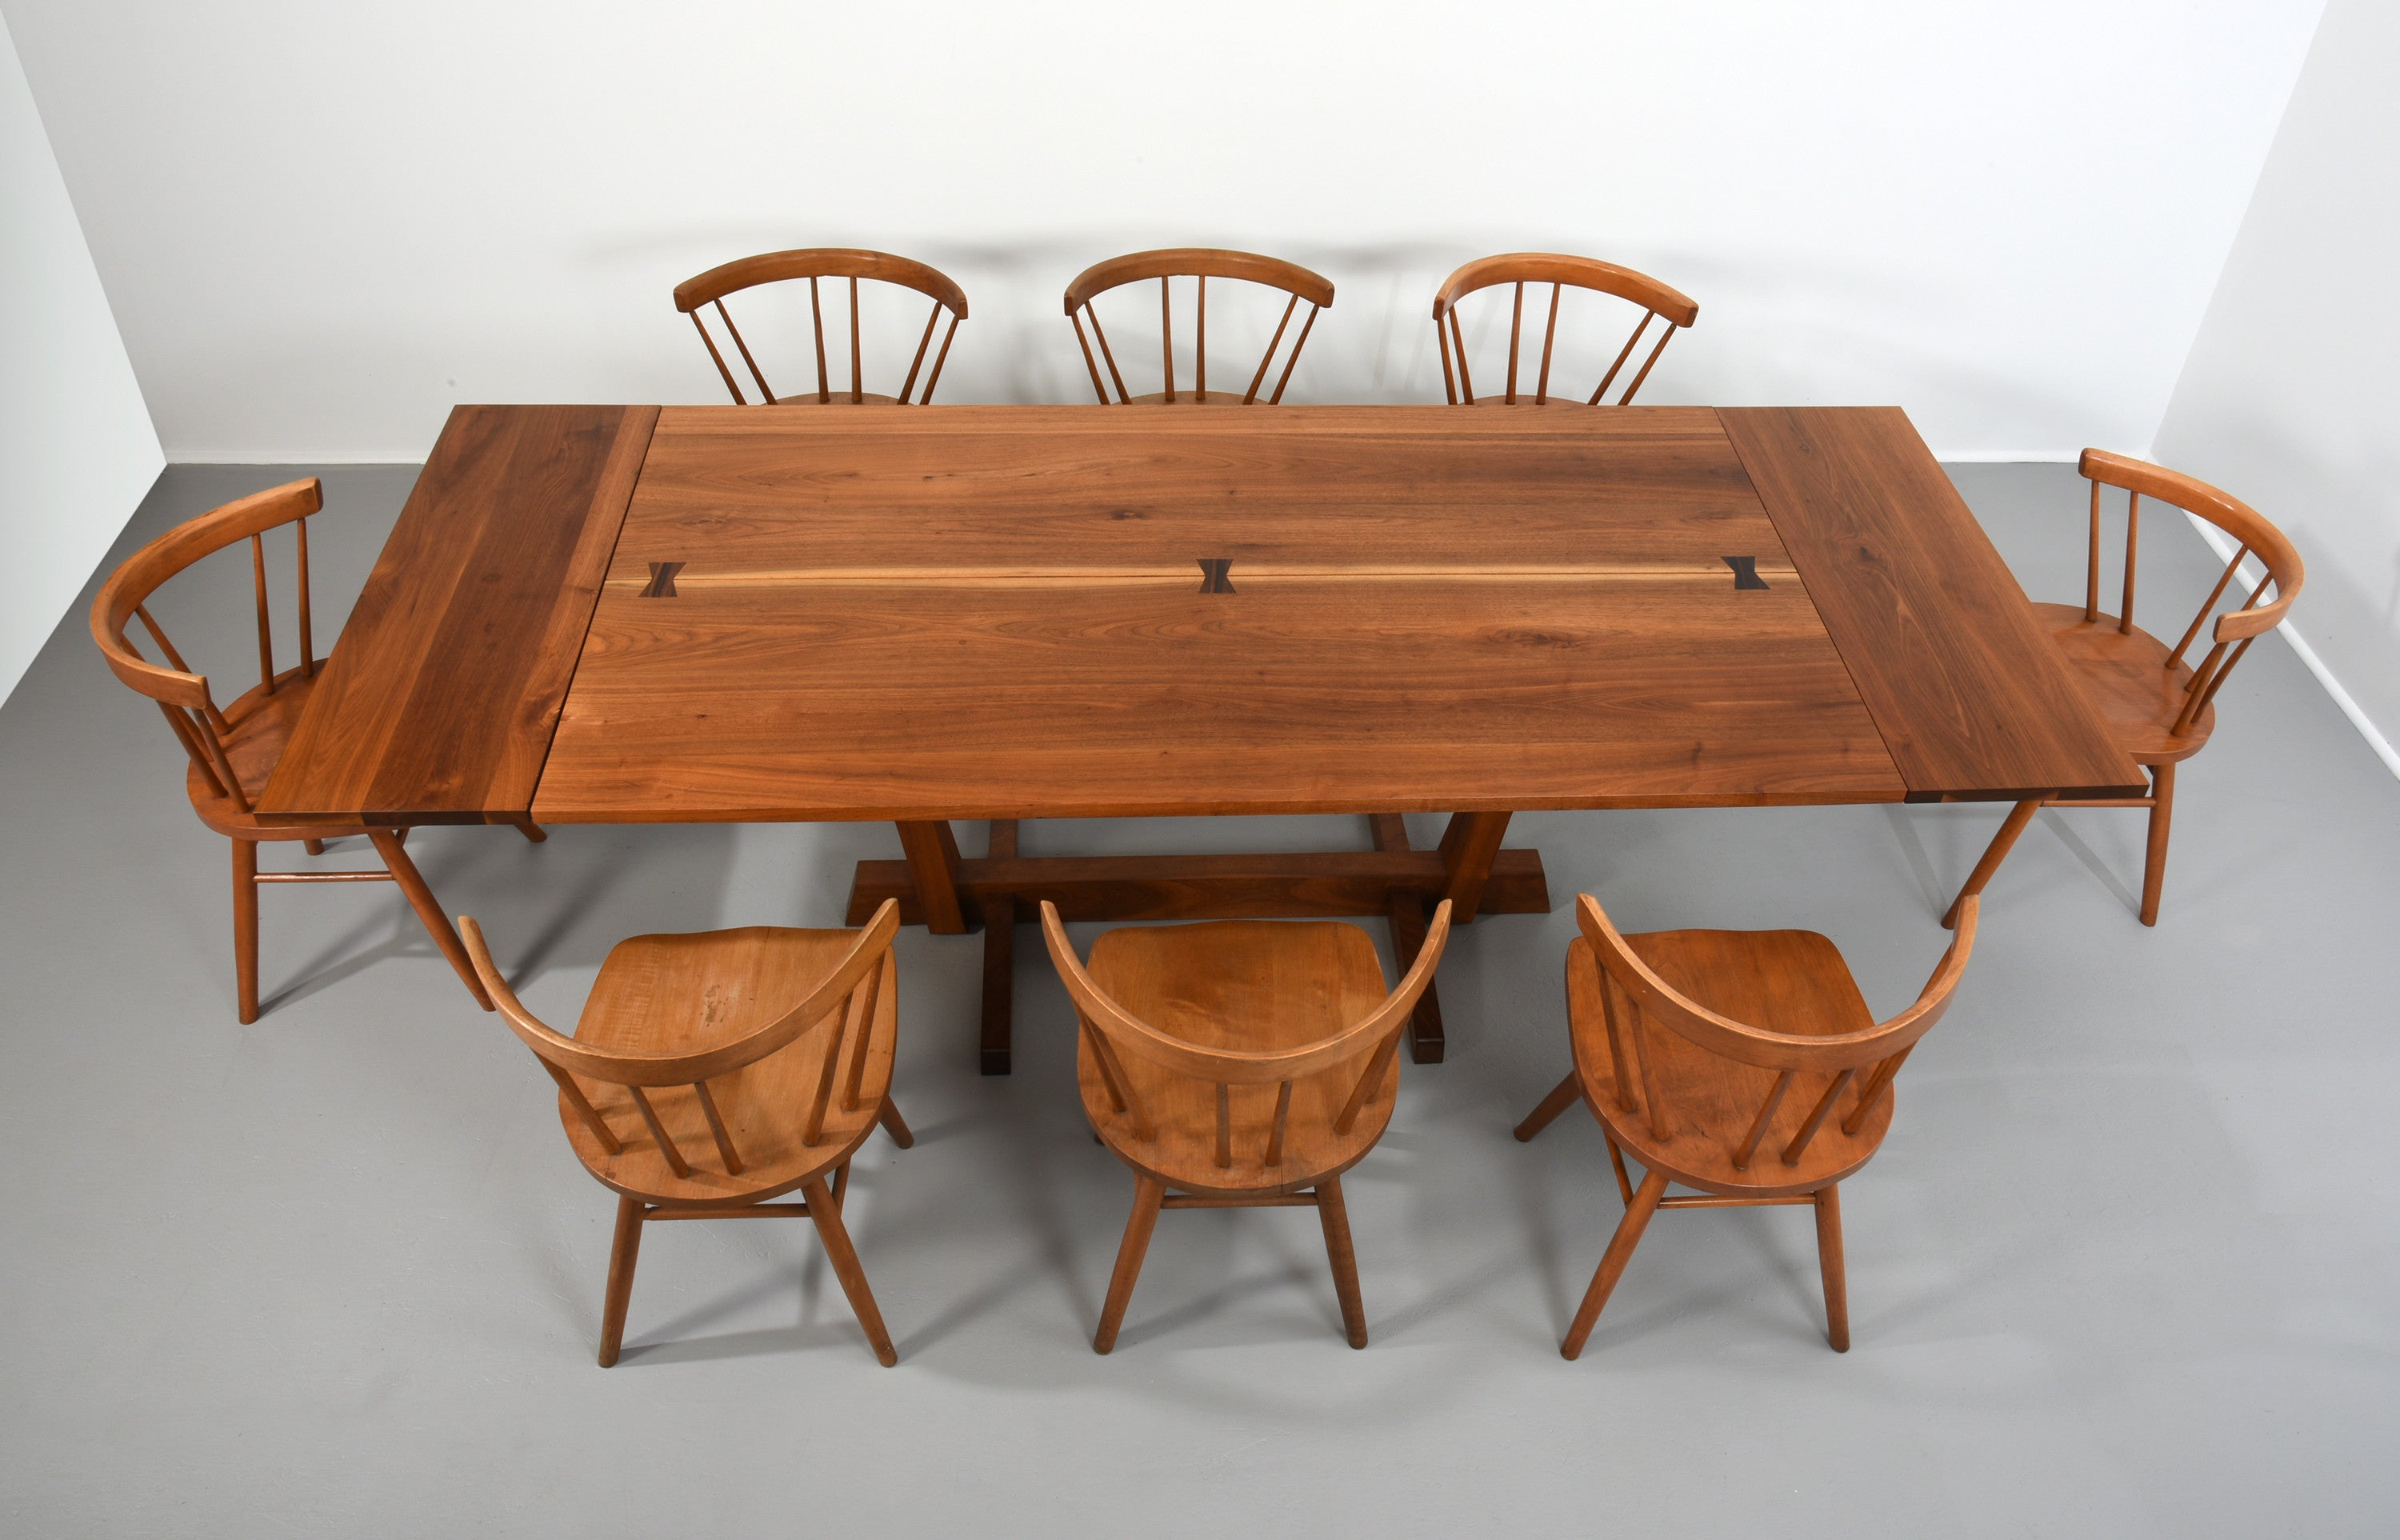 George Nakashima Conoid Dining Table in Walnut and Rosewood – The